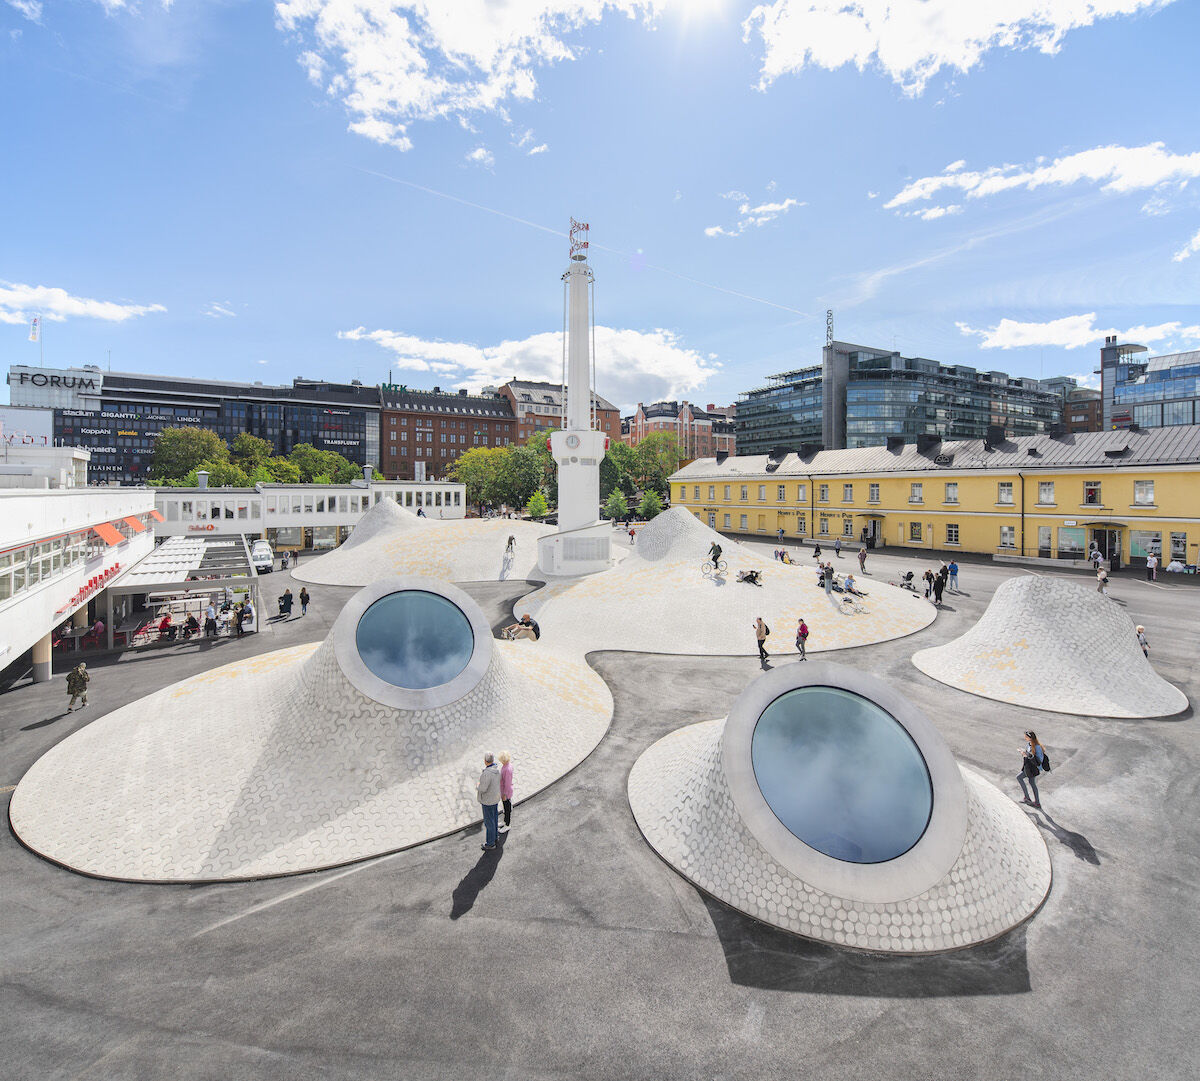 The exterior of the Amos Rex museum in Helsinki. Photo by Mika Huisman, courtesy Amos Rex.